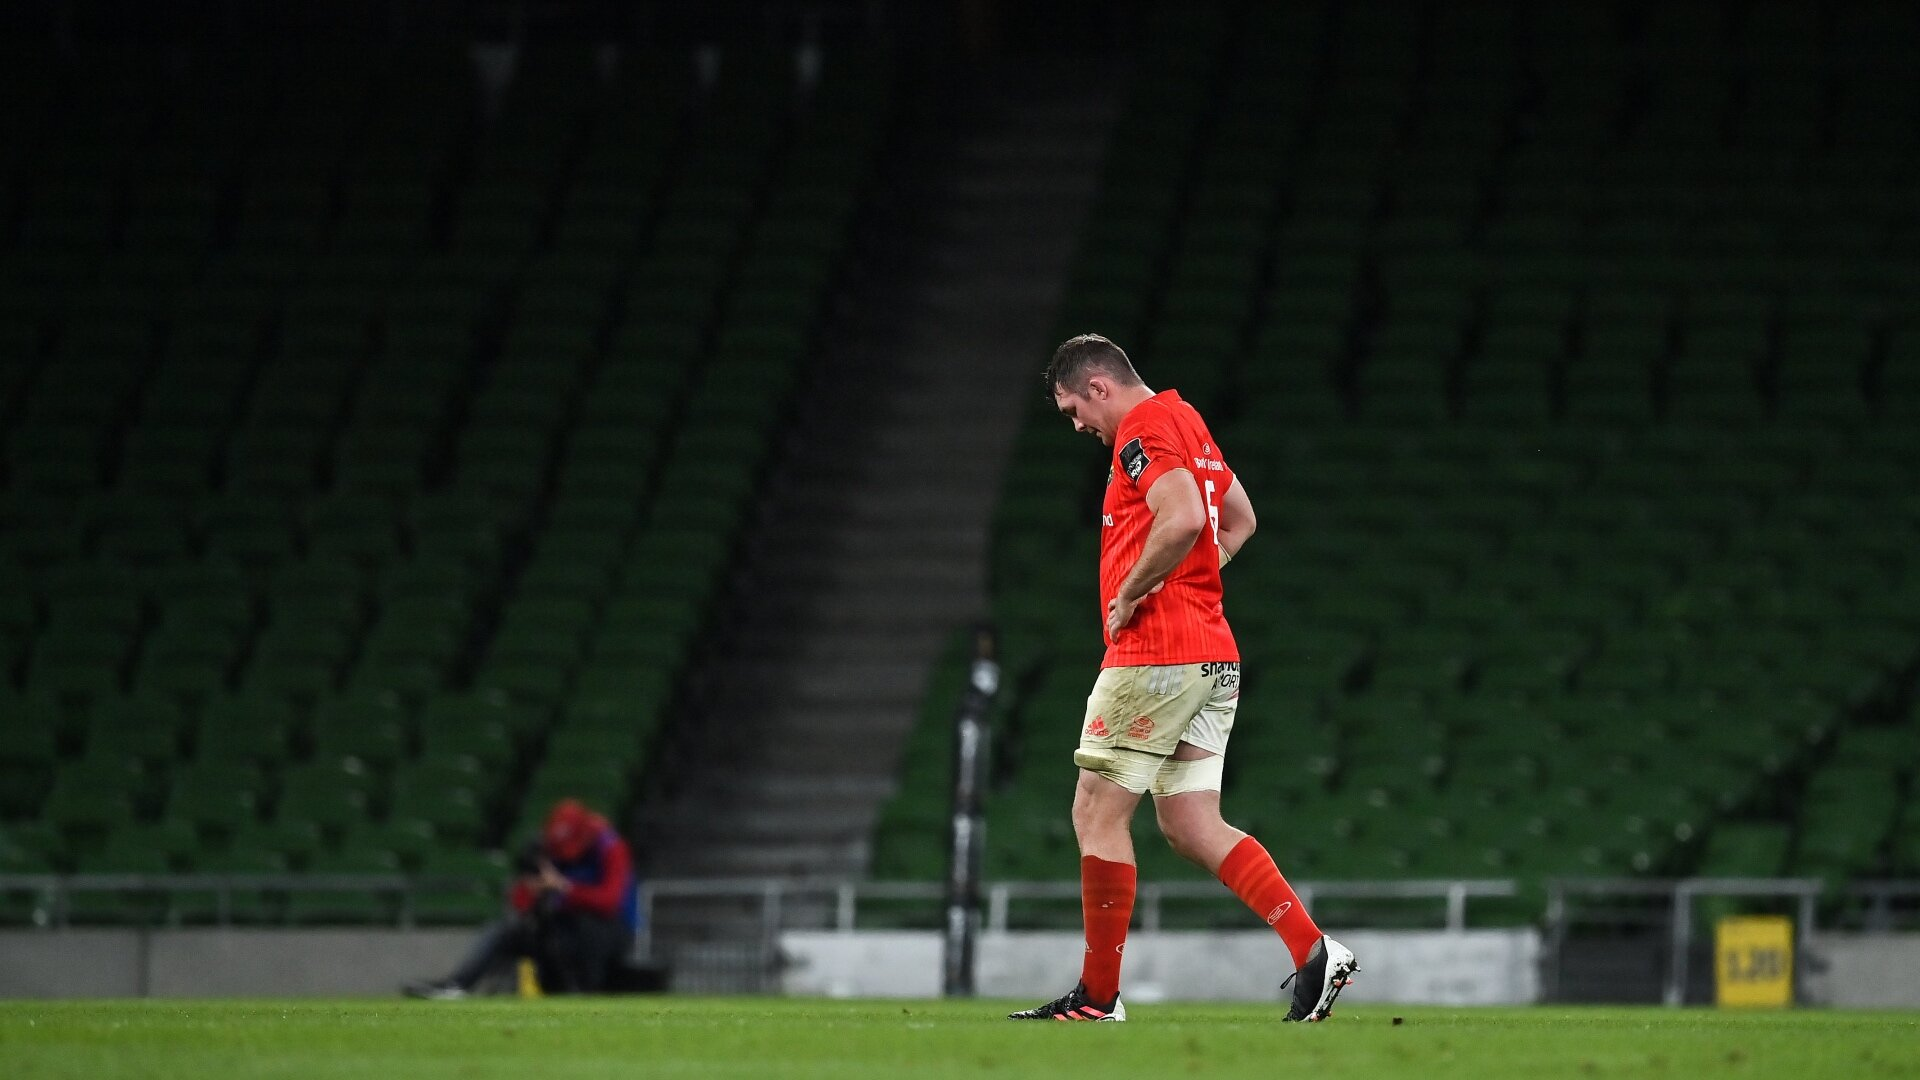 Furious Welsh fans accuse PRO14 of Irish bias following Peter O'Mahony decision